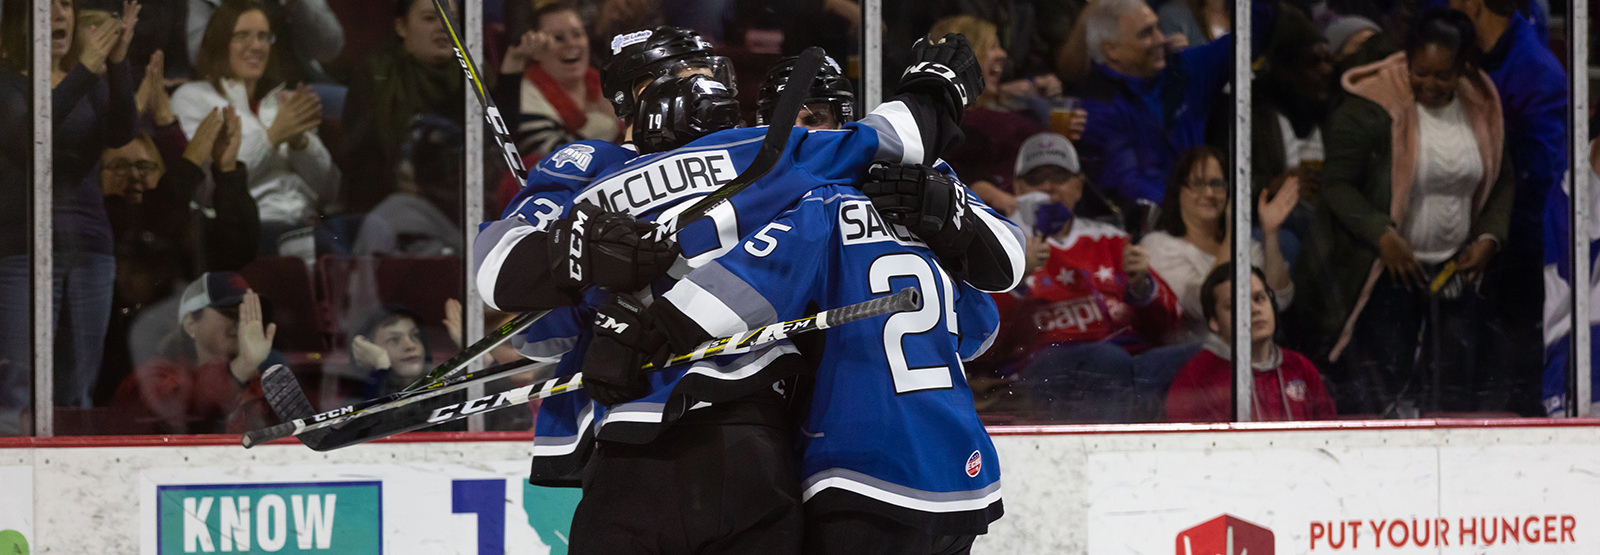 Idaho Steelheads celebrate a goal in Boise Idaho